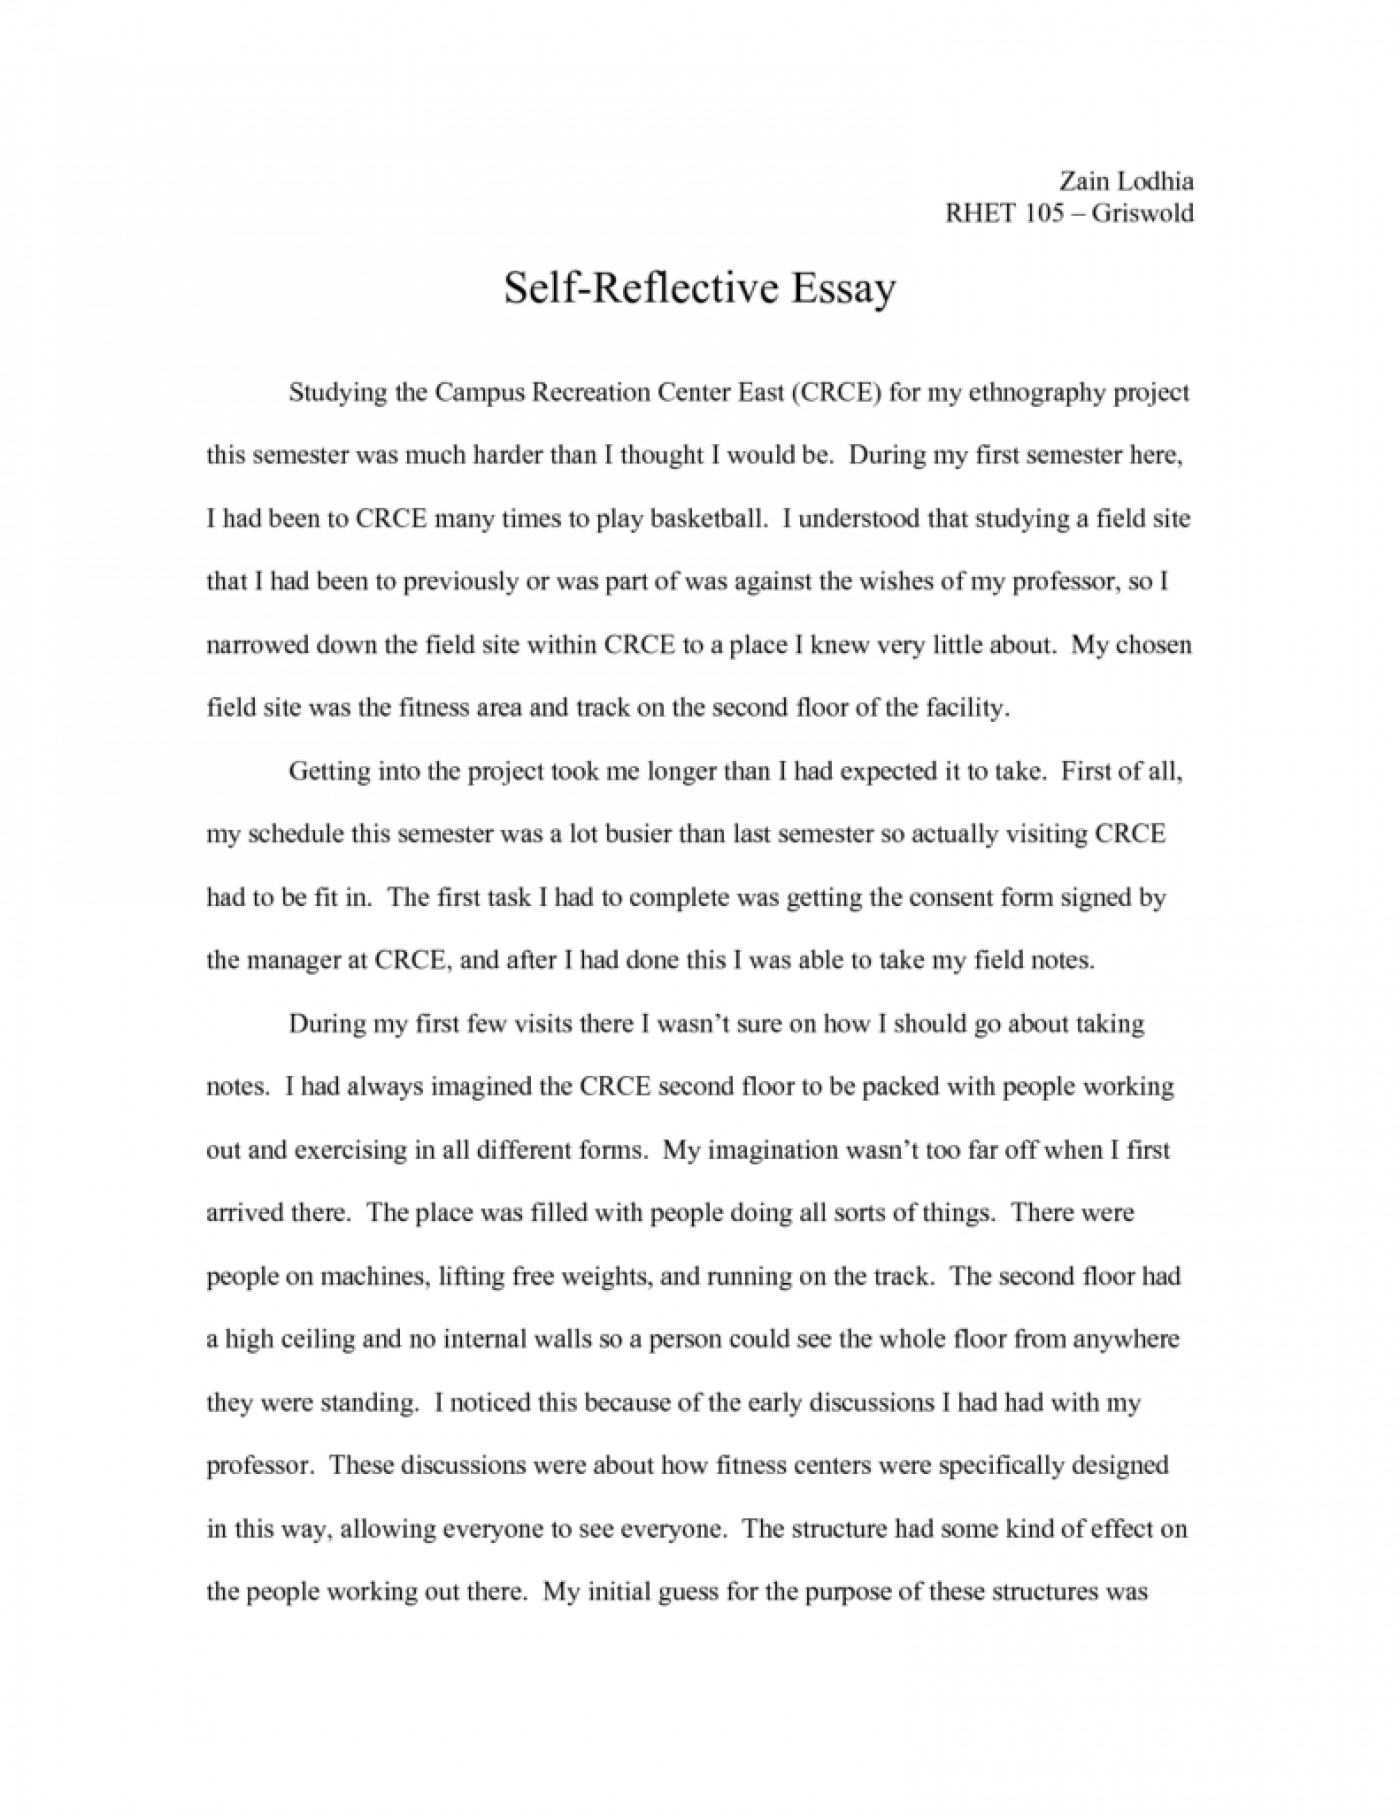 002 essay example reflective introduction reflection